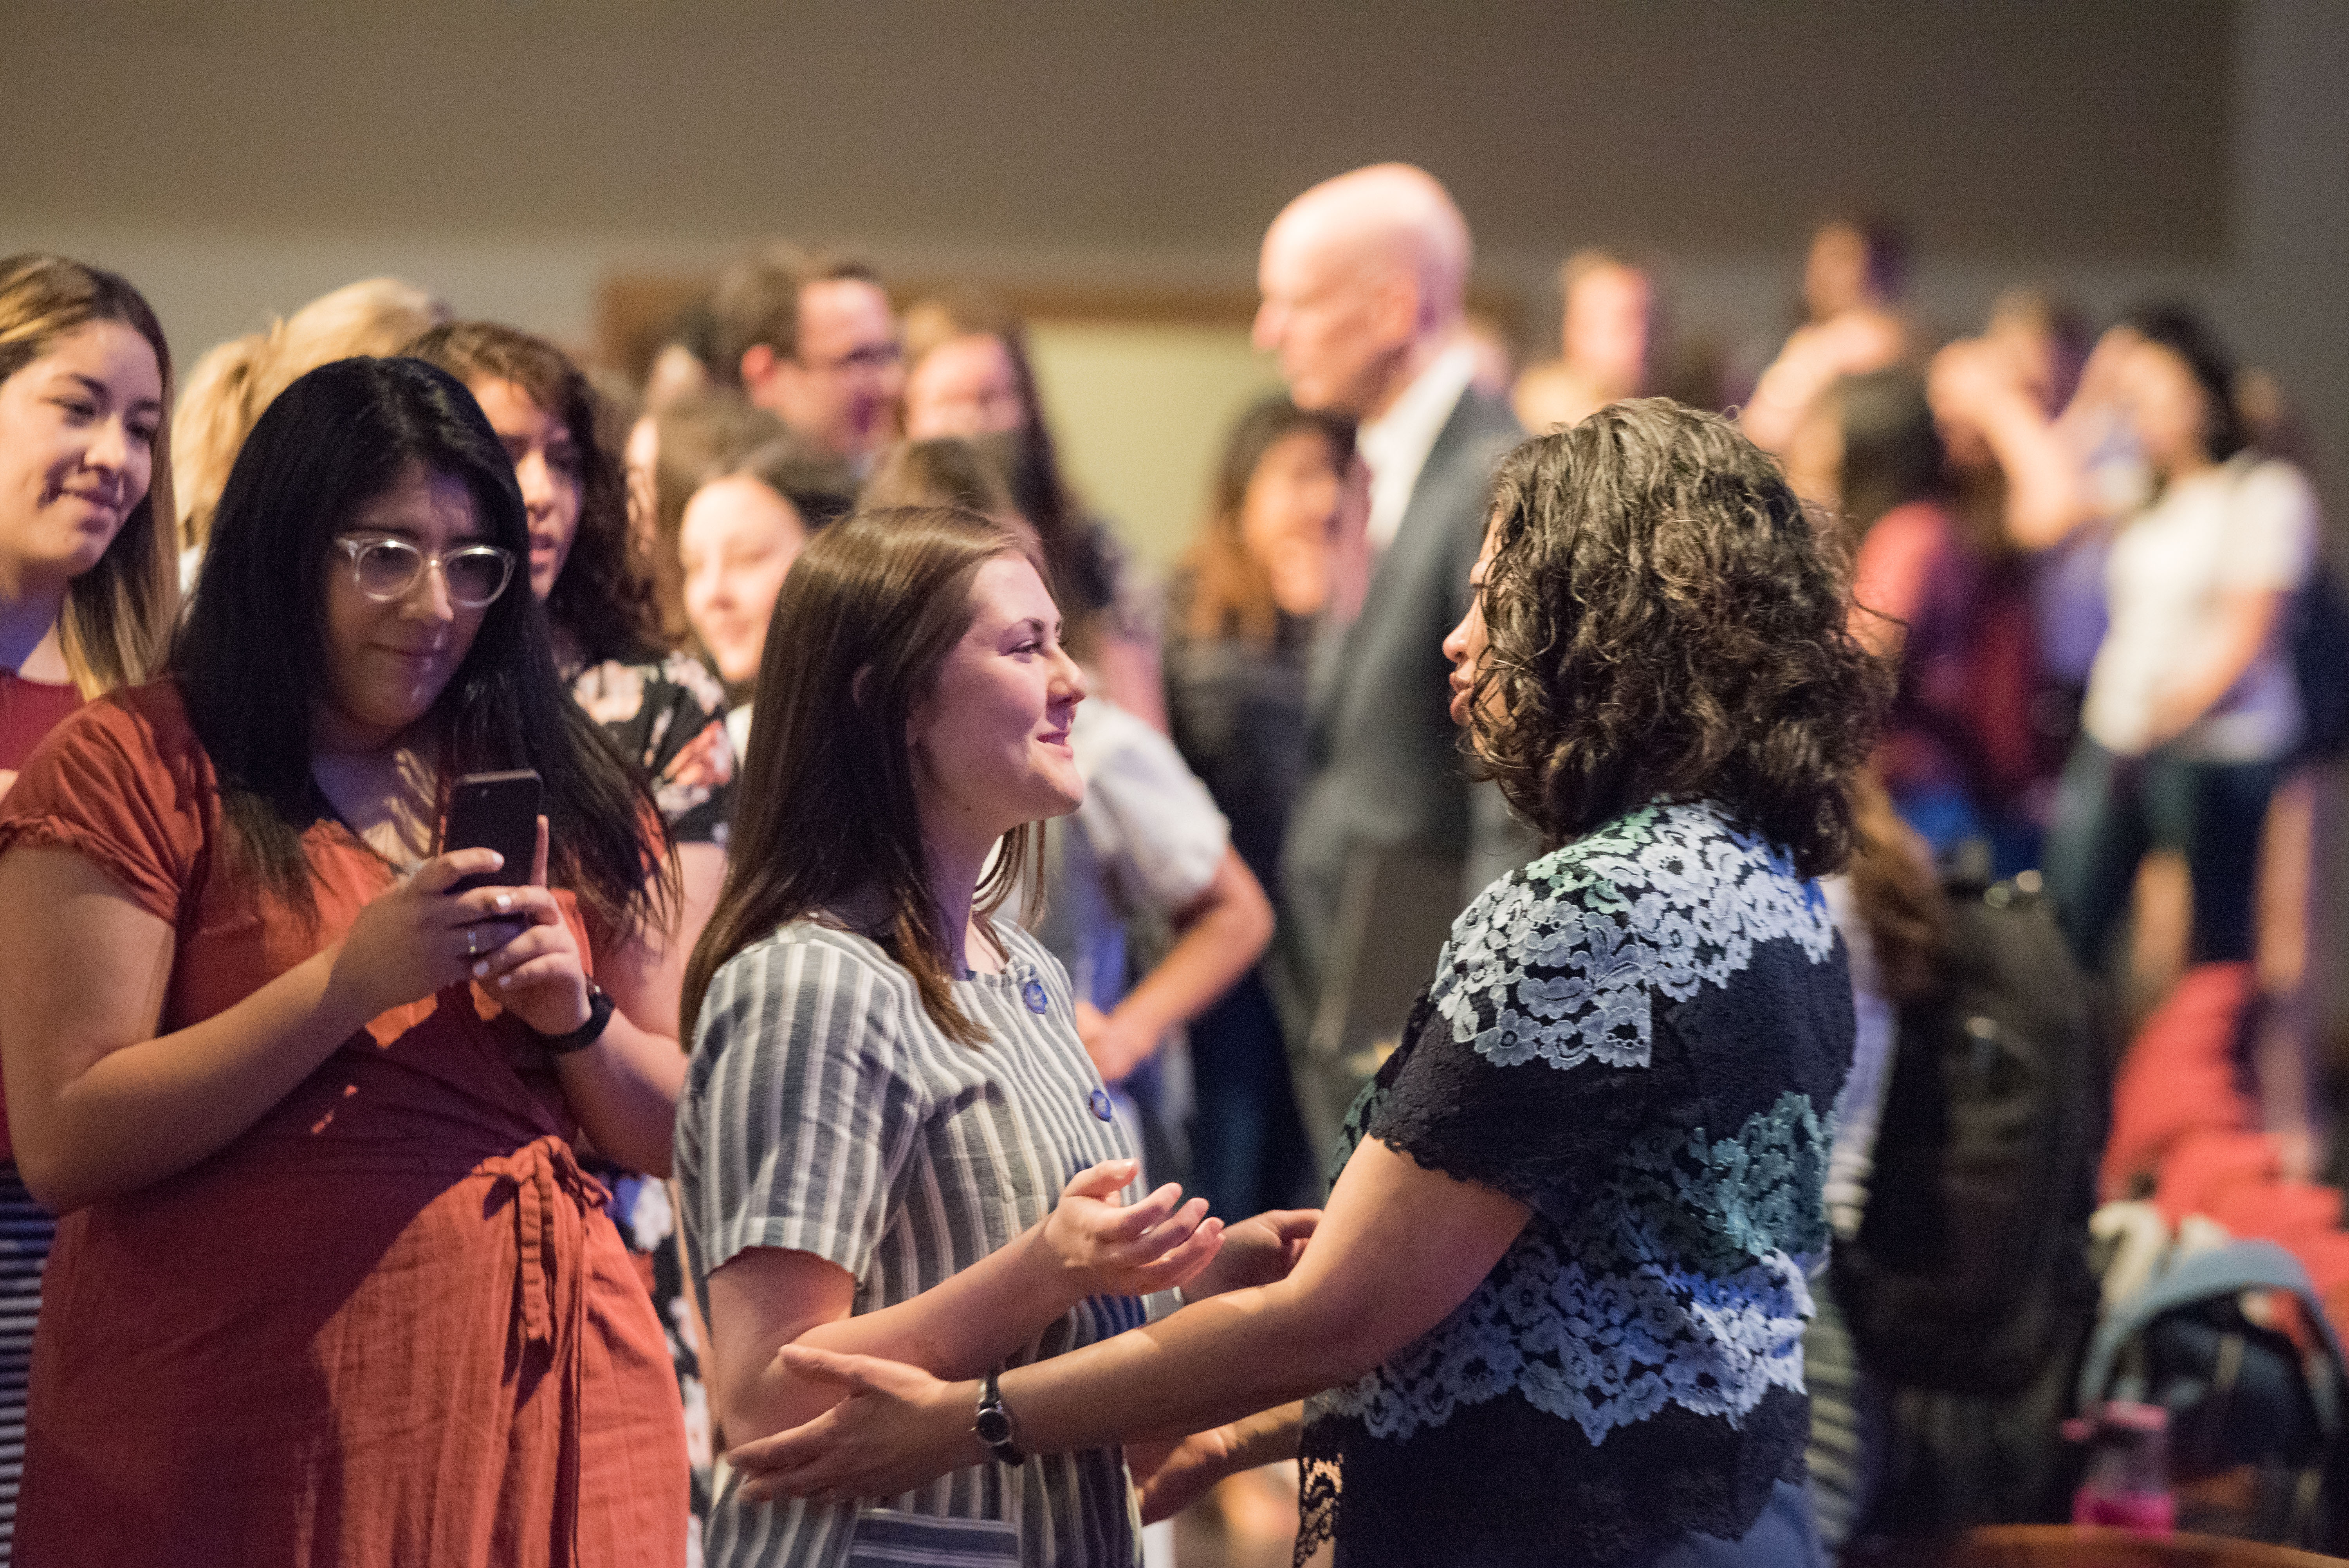 Sister Reyna I. Aburto, second counselor in the Relief Society general presidency, meets with BYU-Idaho students following a devotional held on June 4, 2019.